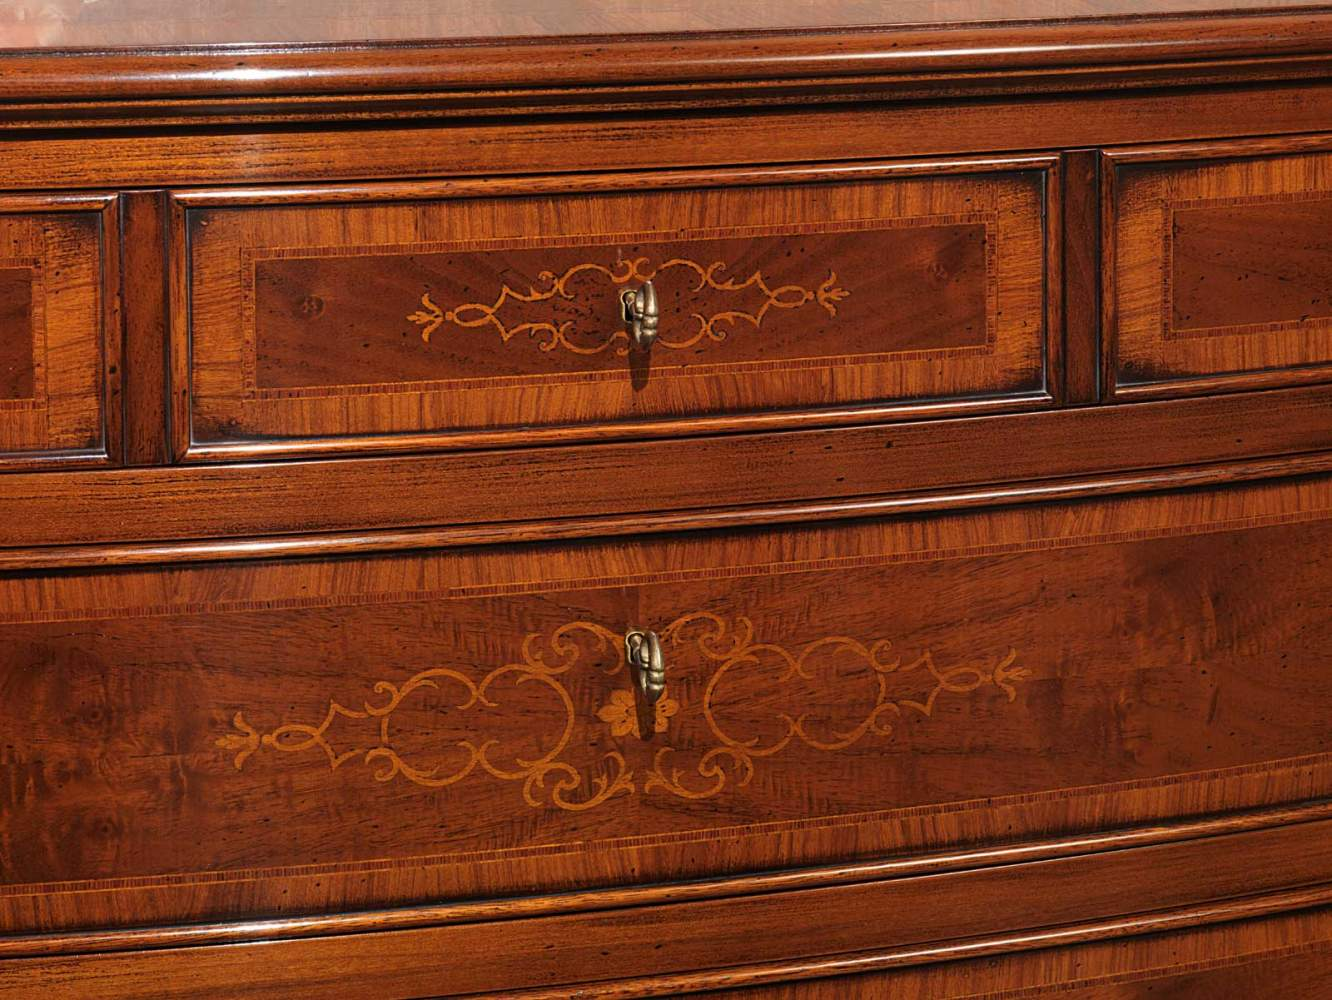 Chest of drawers in inlaid wood, detail